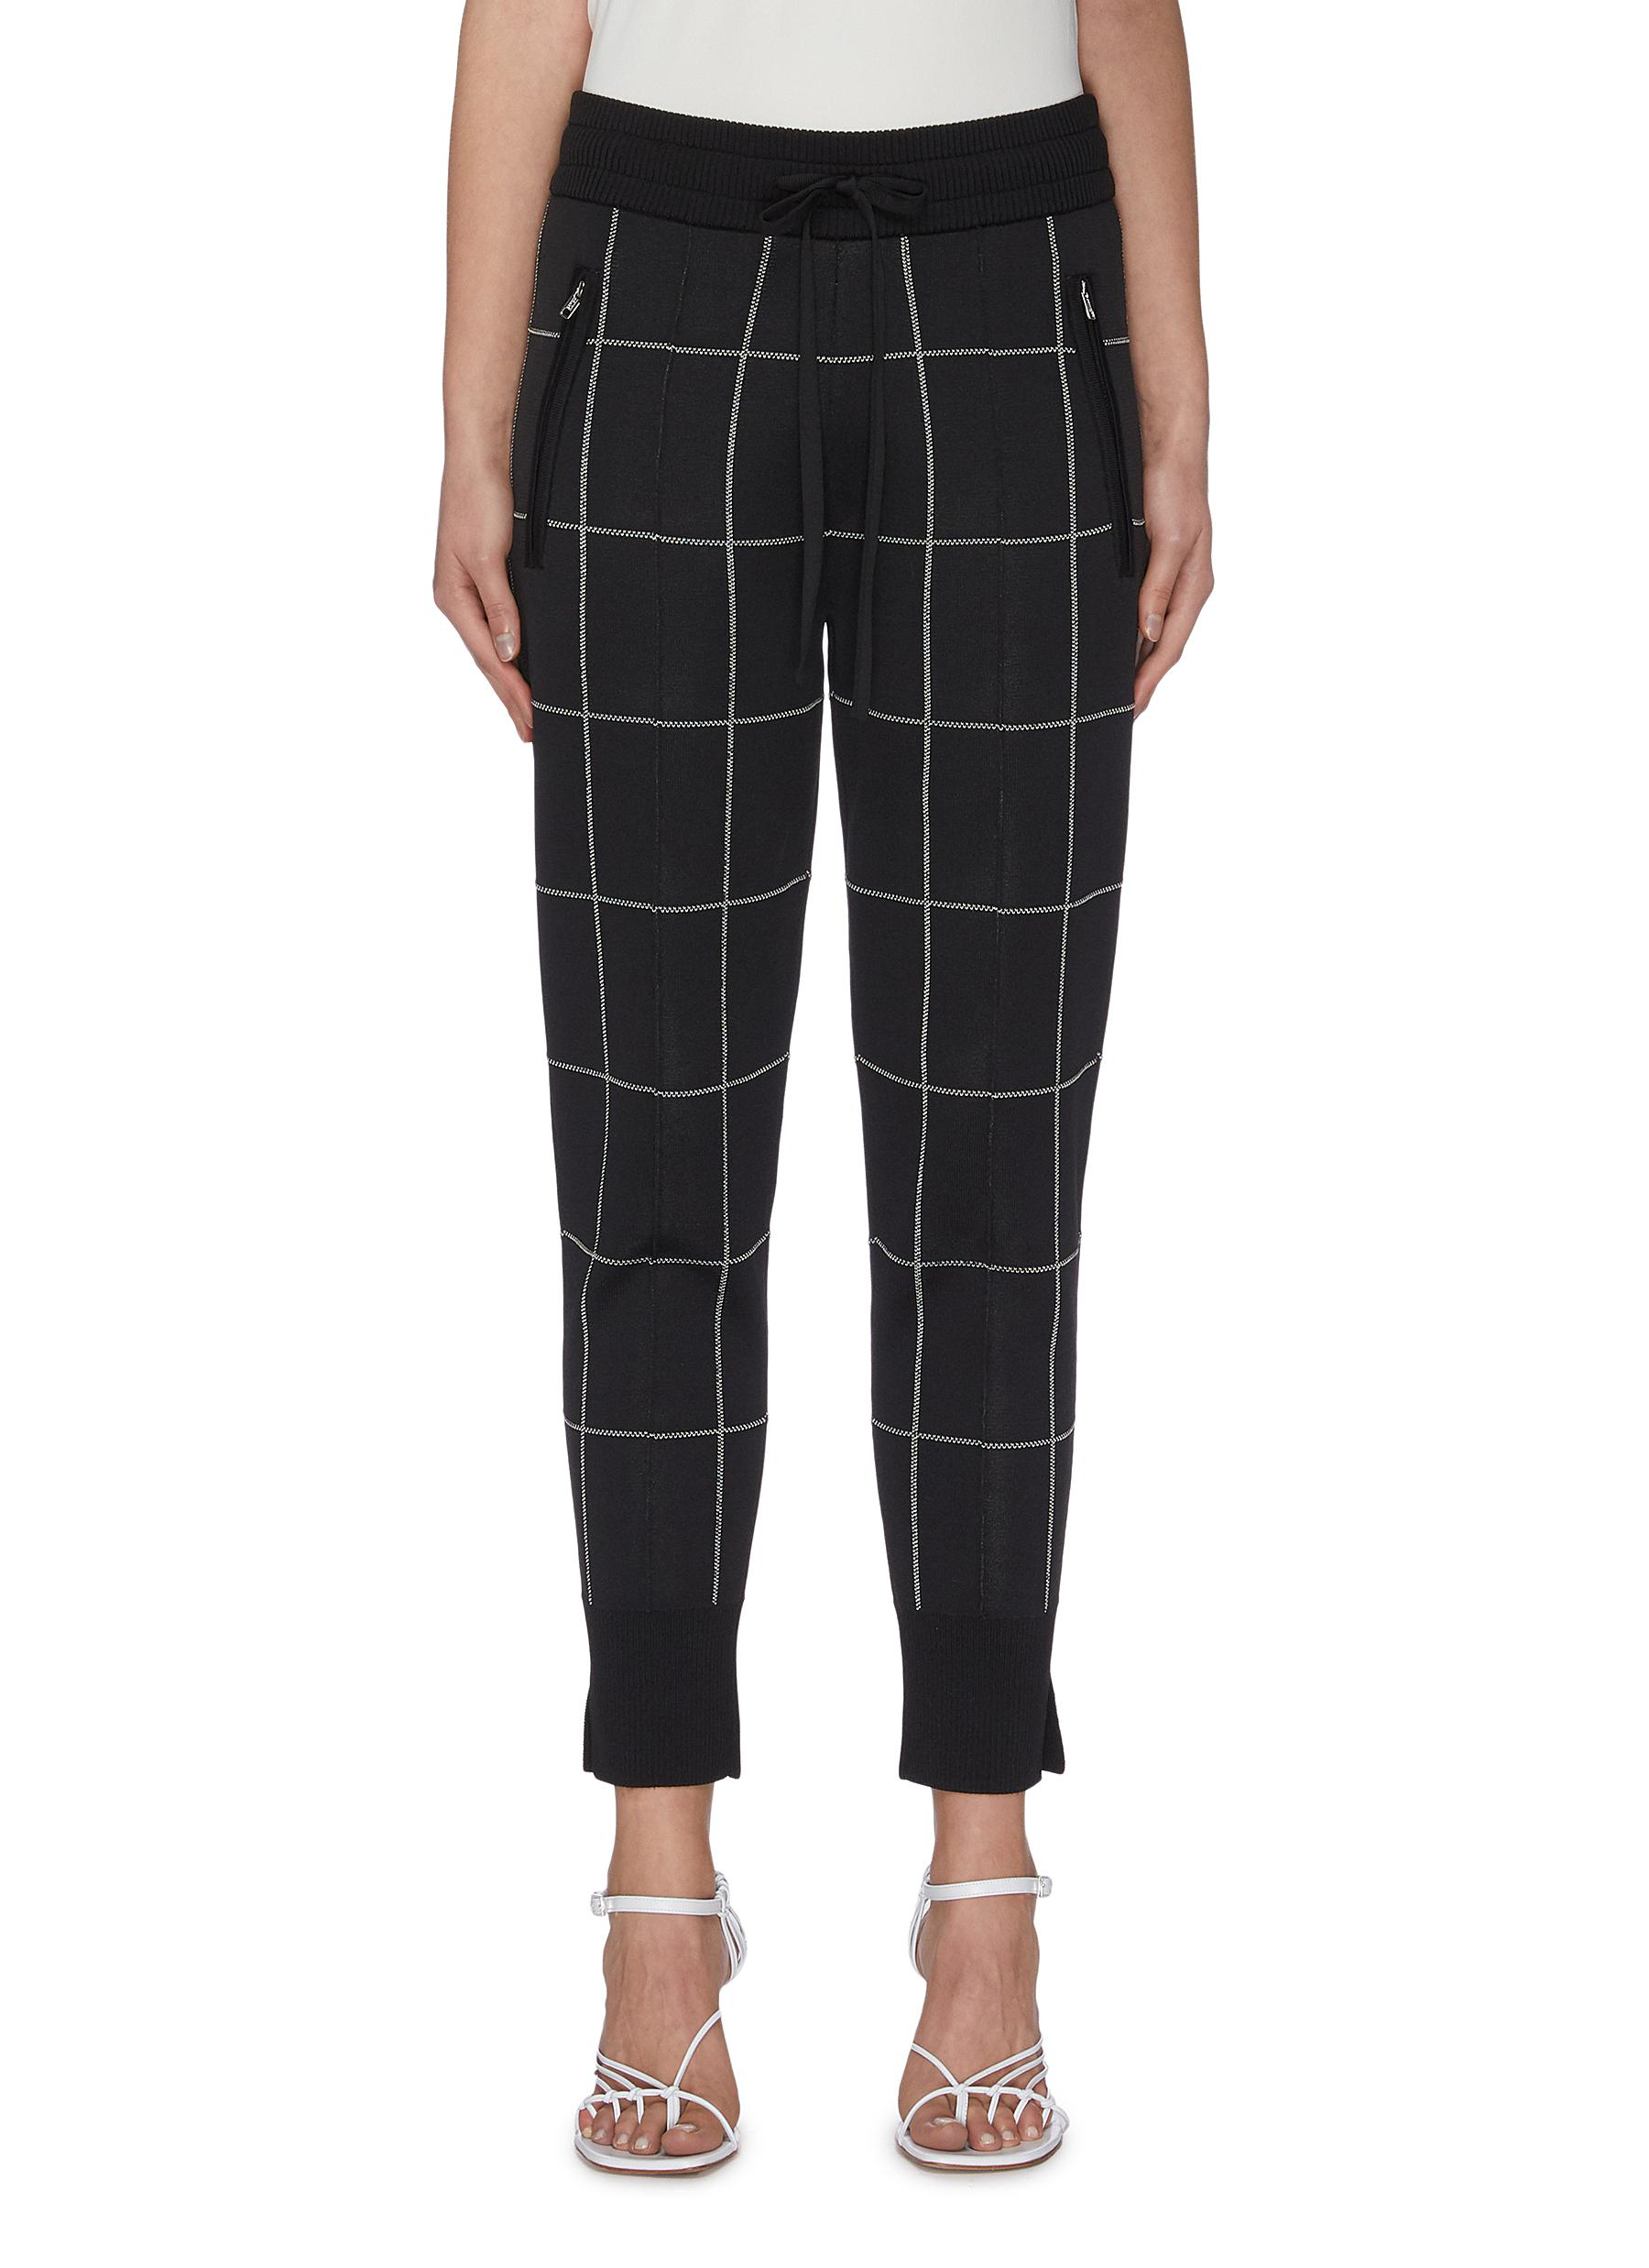 Buy 3.1 Phillip Lim Pants & Shorts Window pane check sweatpants